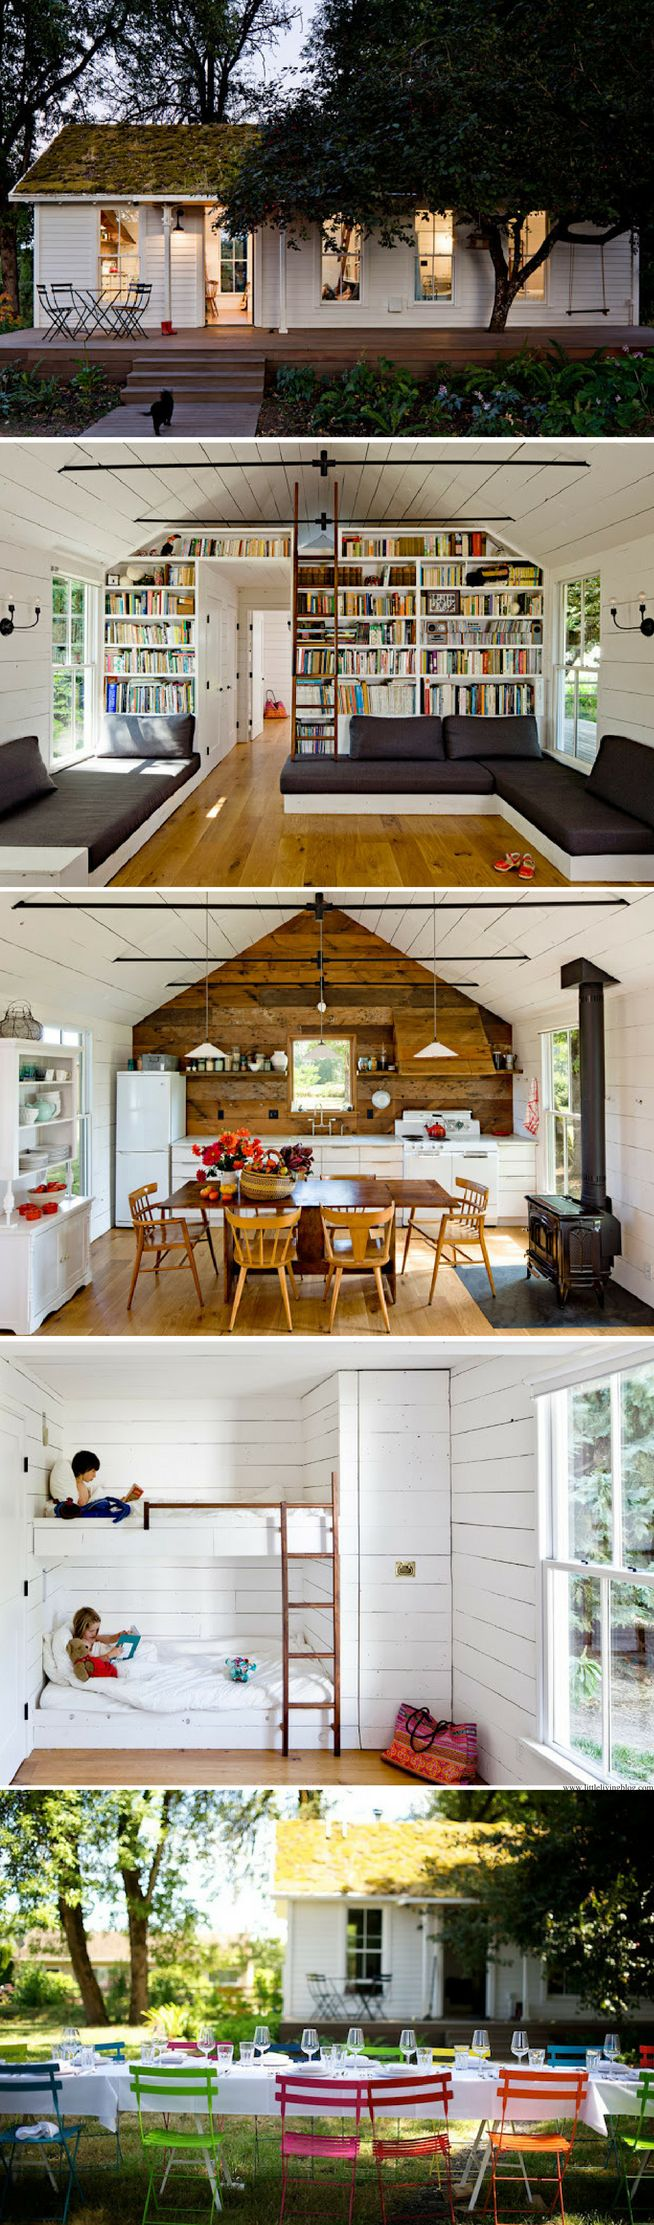 A beautiful reclaimed home in Oregon that sans just 540 sq ft!